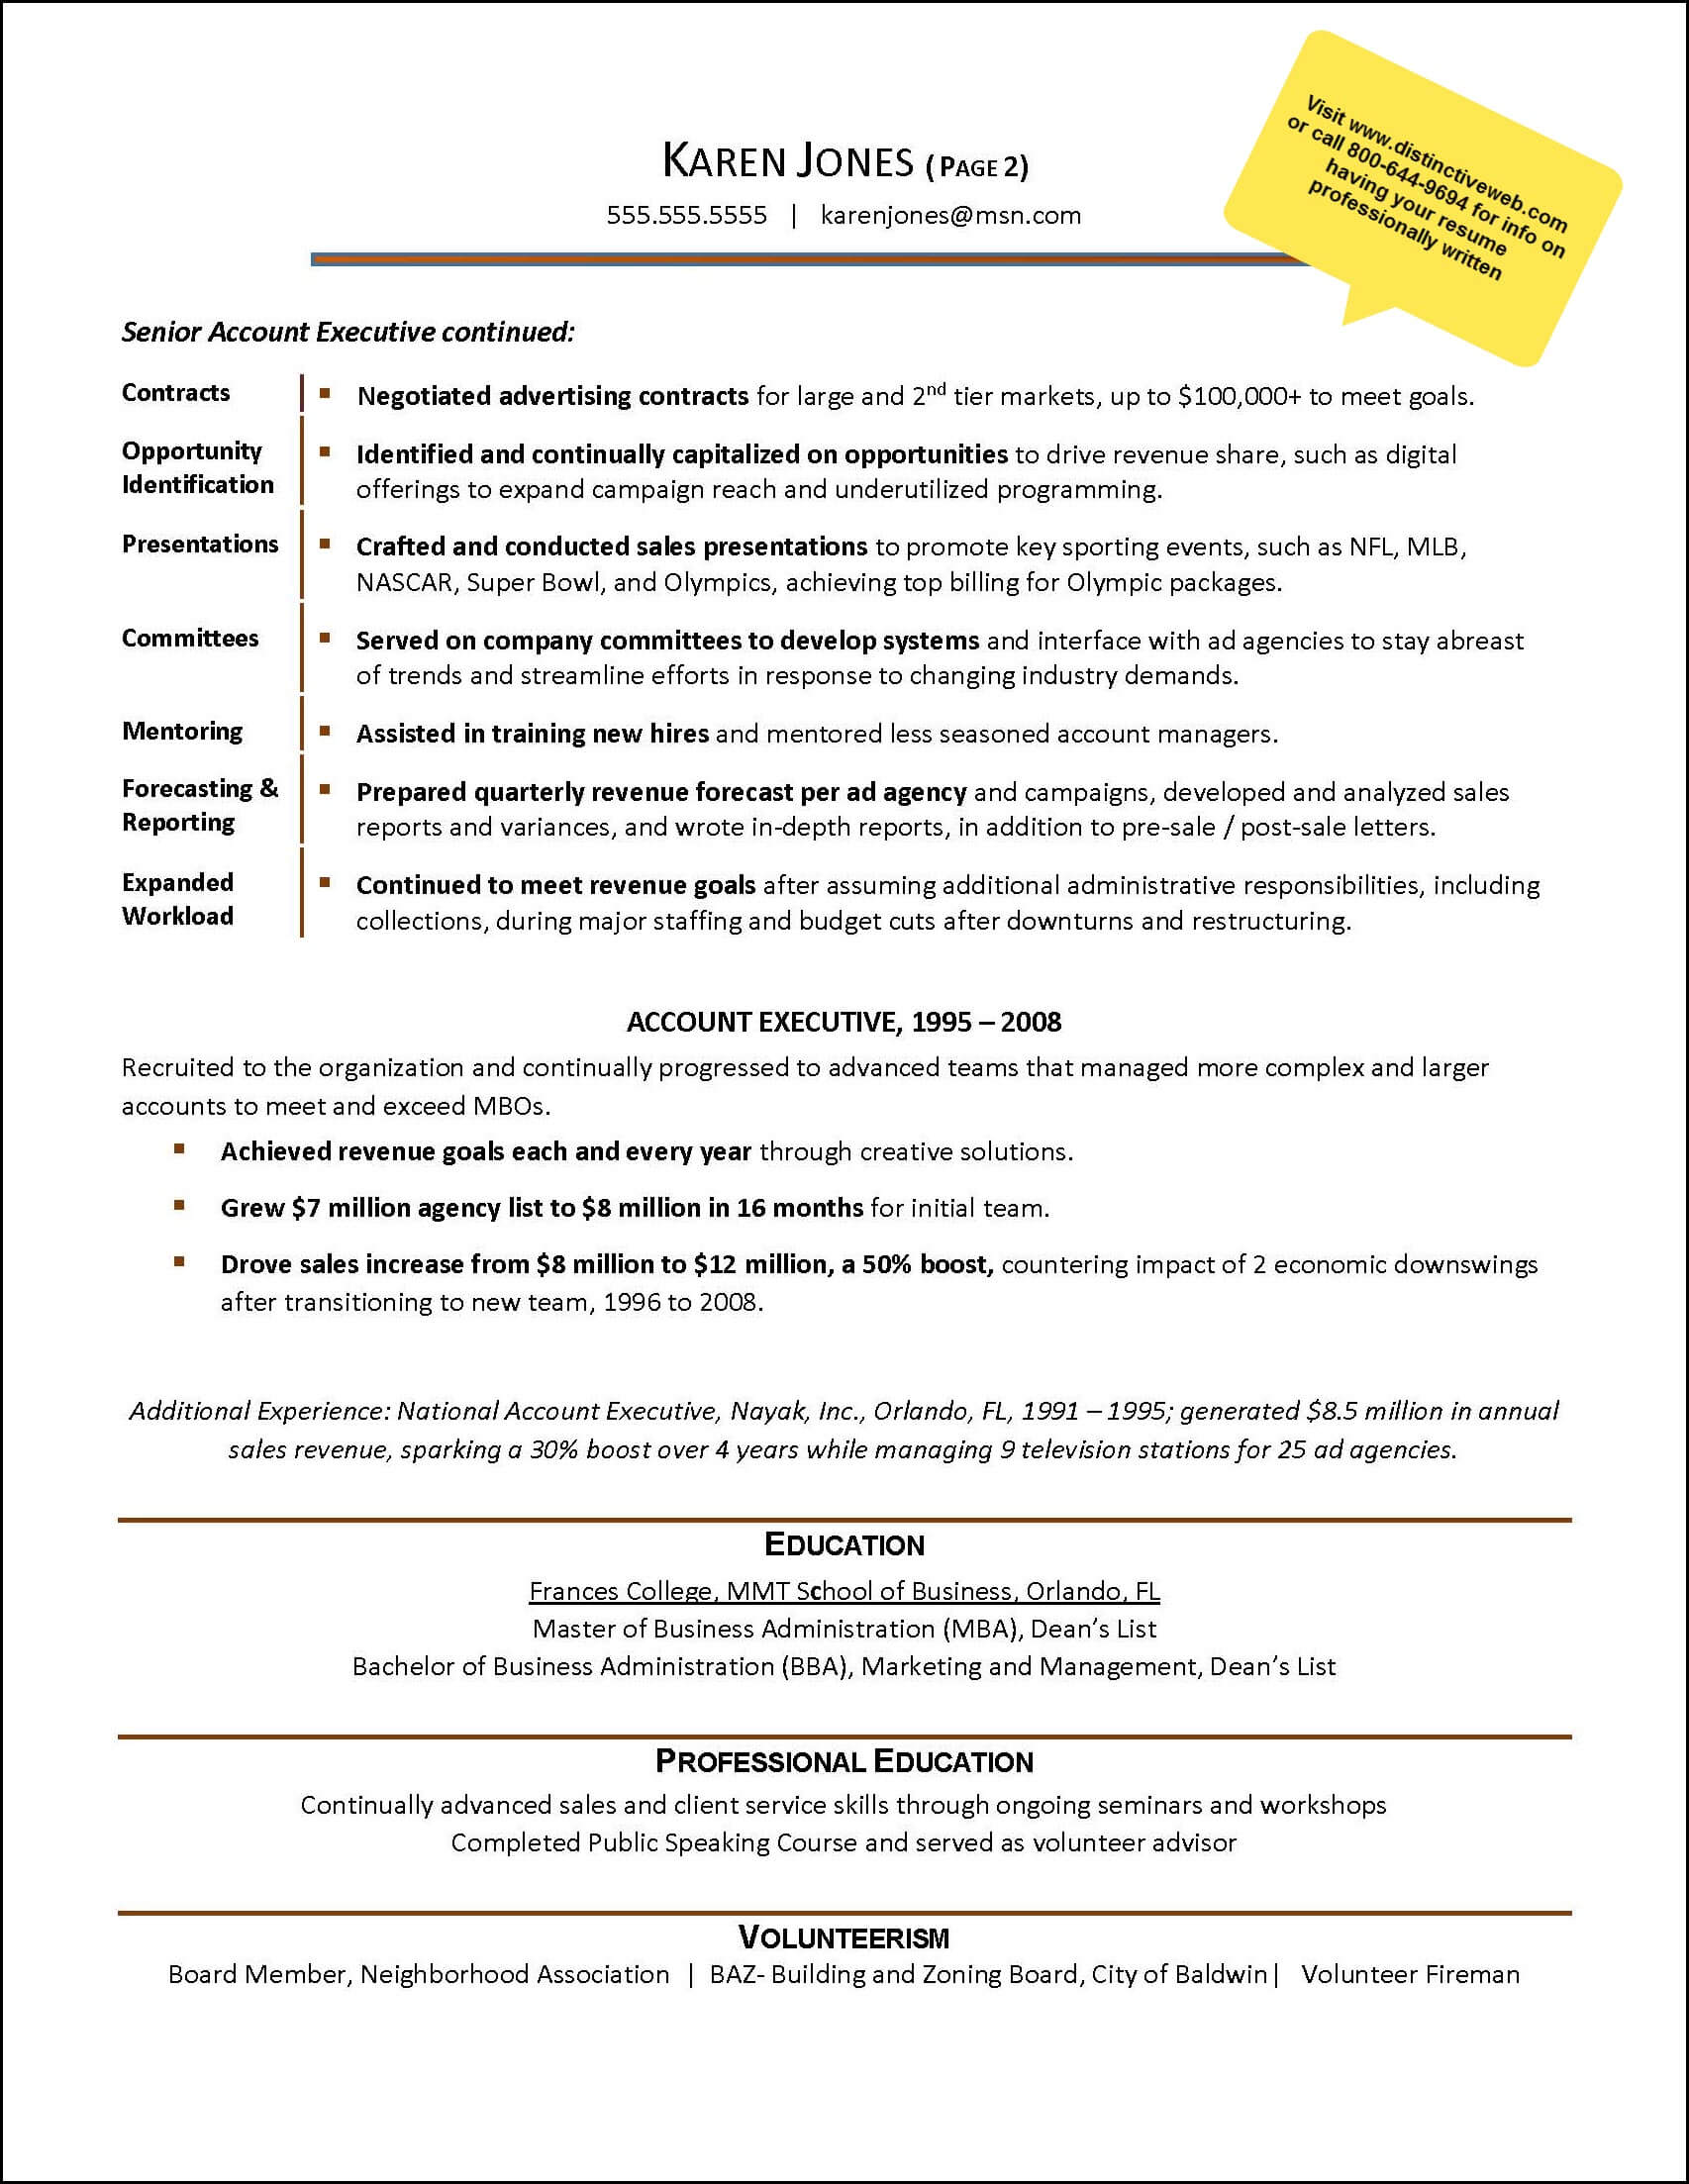 Sample Resume Written To Help An Advertising Industry Account Executive  Advance Her Career U2013 Page 2  Mid Career Resume